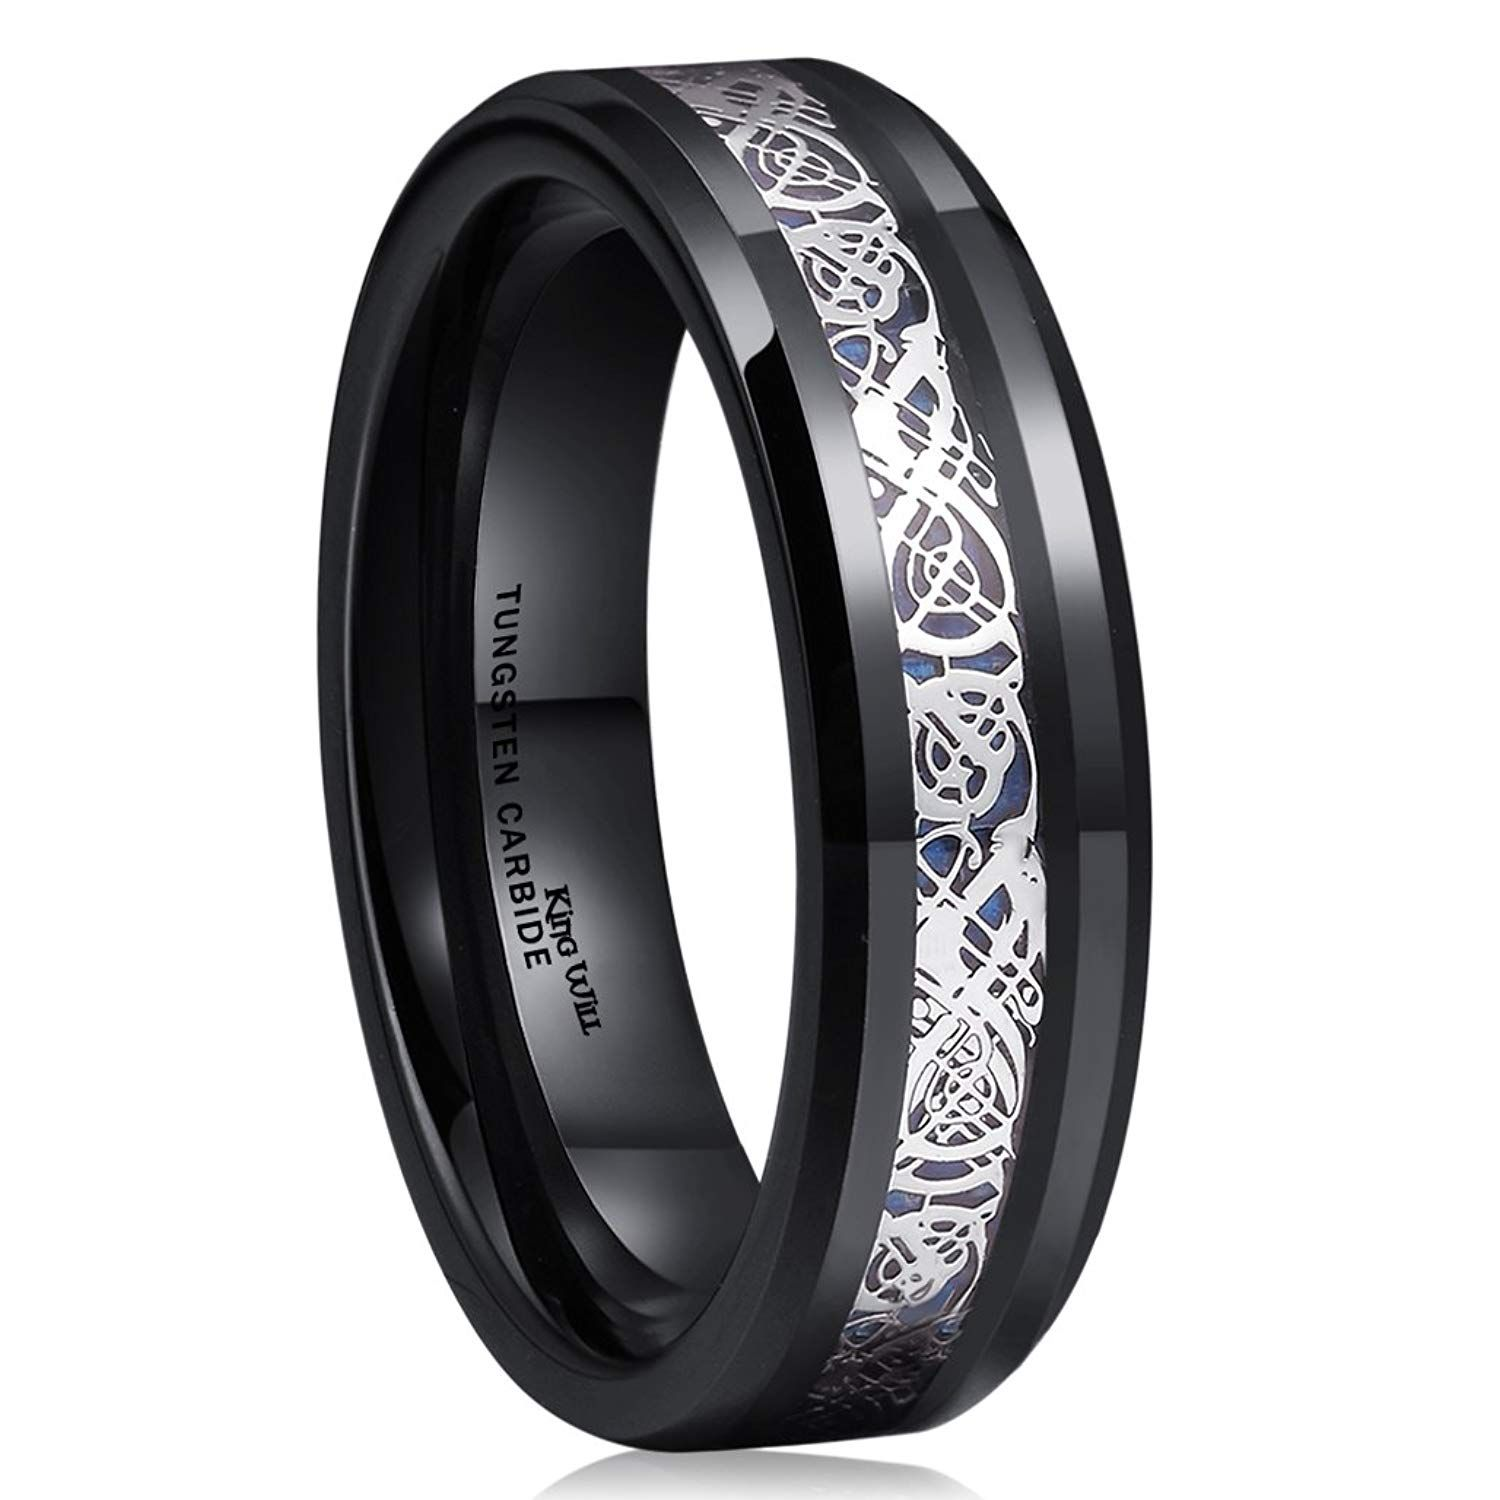 King Will Dragon 6mm Black Tungsten Carbide Ring Blue Carbon Fiber Silver Celtic Wedding Band Wonderful Of You To Have Dropped By Visit Our: Bands Celtic Black Wedding Tungsten With At Websimilar.org